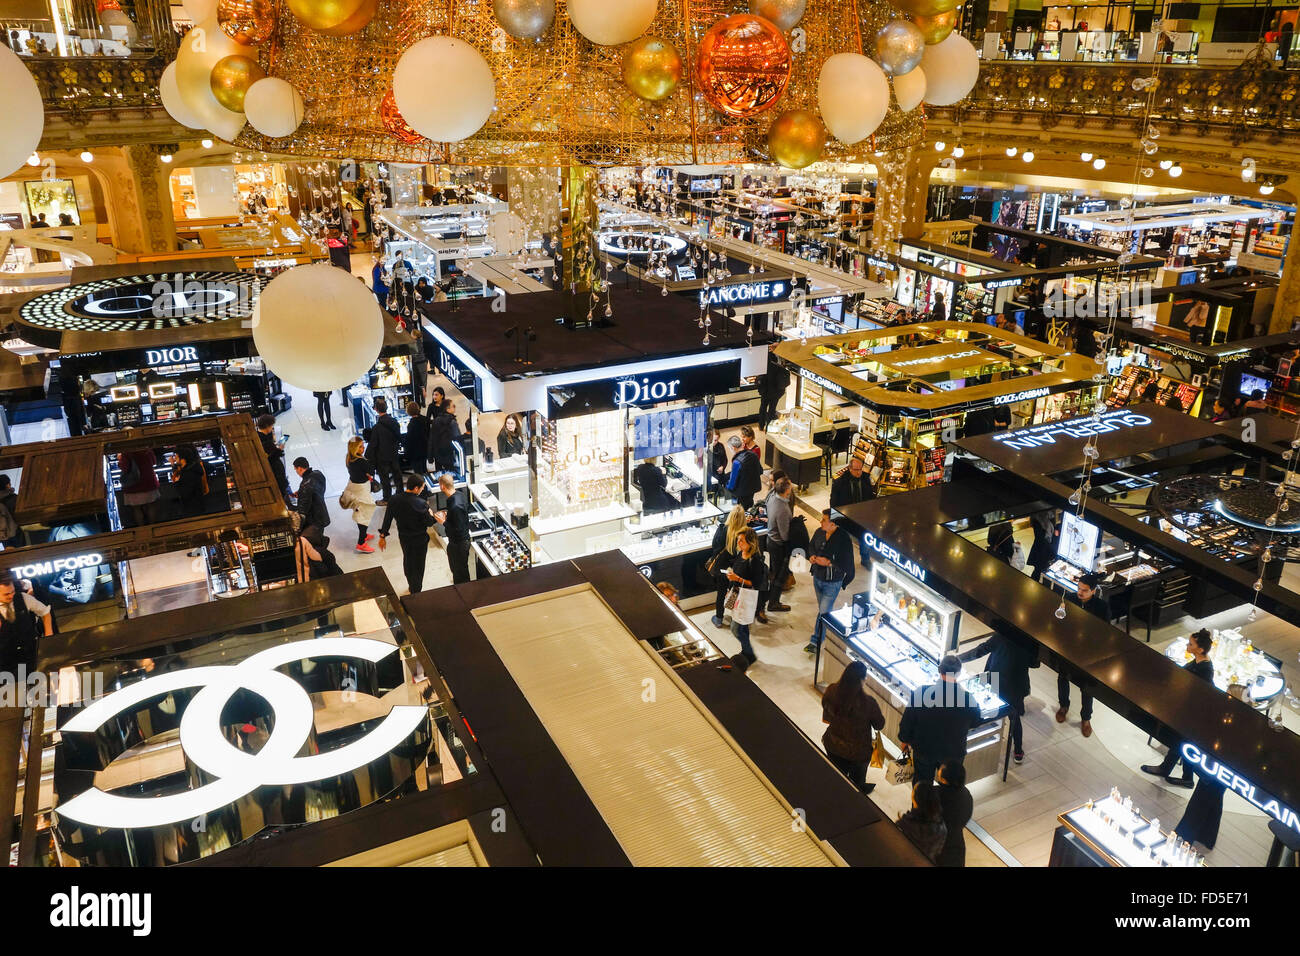 High end perfume shops in main centre of Galeries Lafayette, Paris, France. - Stock Image